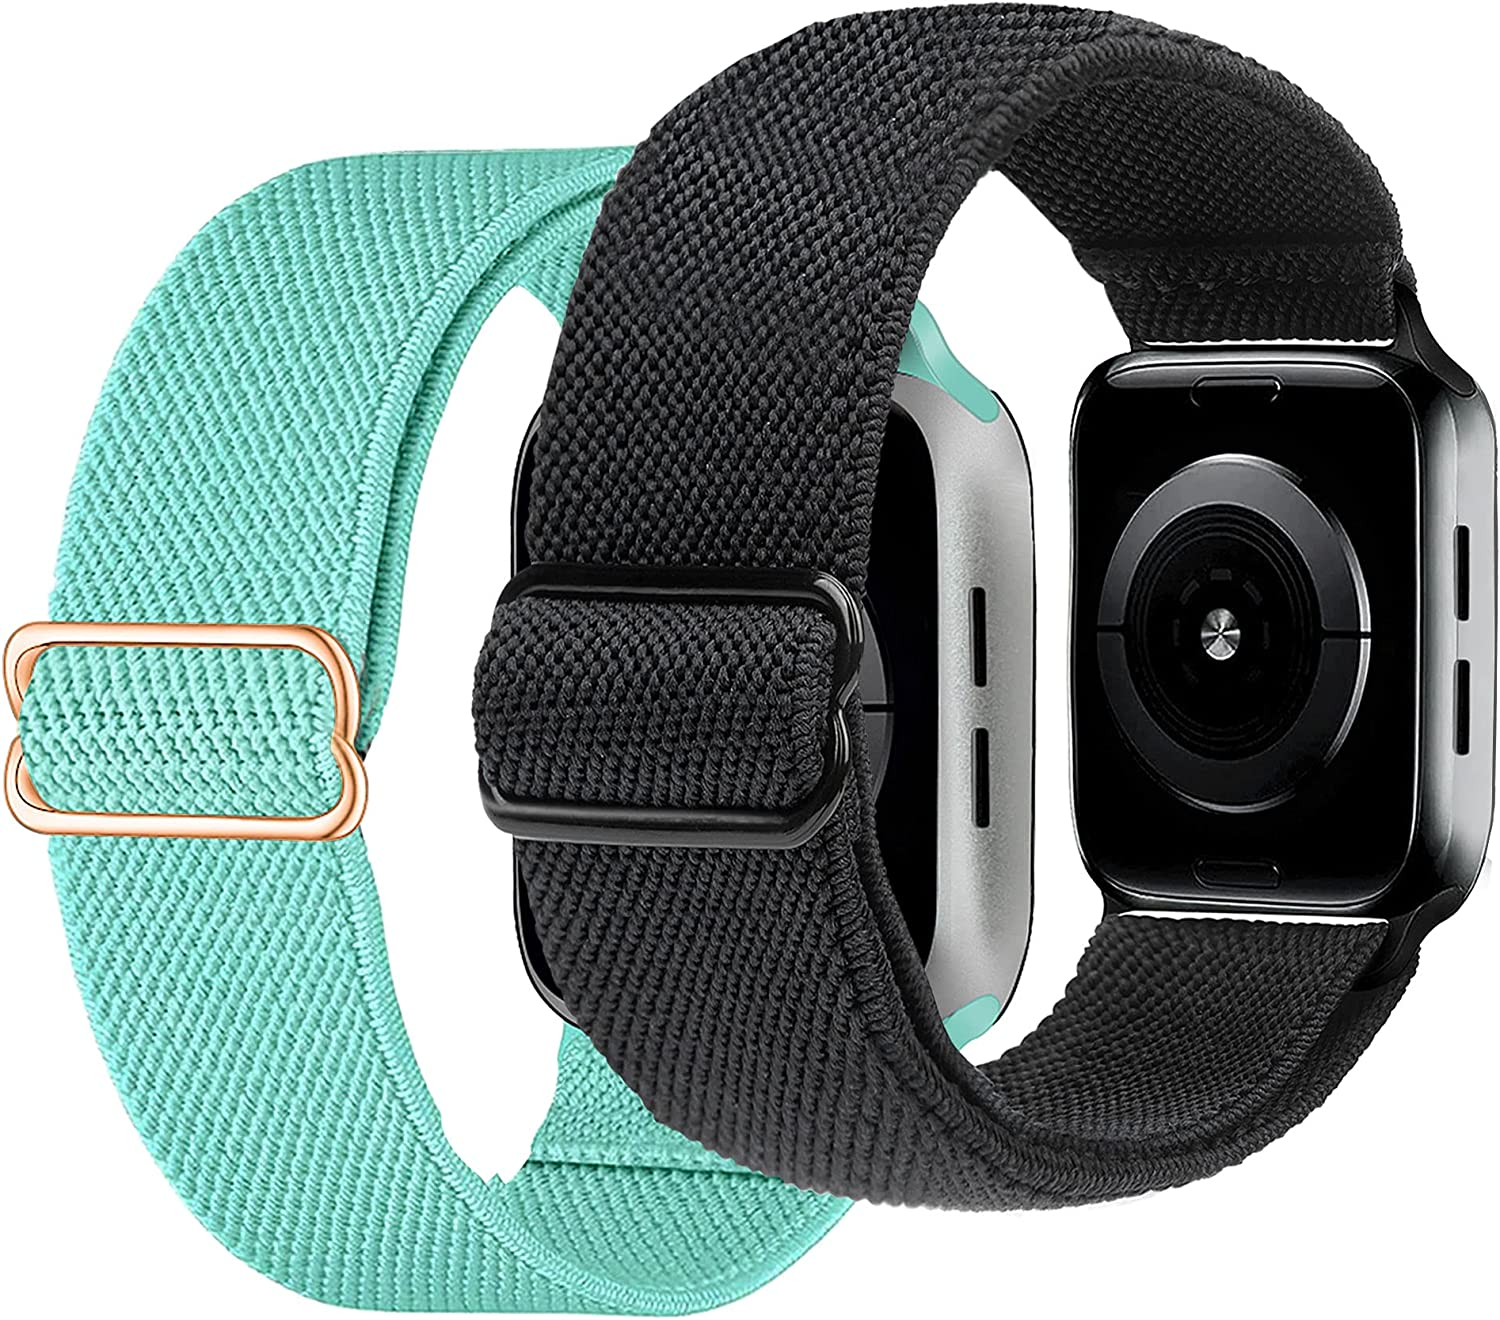 ULUQ Compatible with Apple Watch Bands 40mm 38mm for iWatch Series 6 5 4 3 2 1 SE, Adjustable Stretch Nylon Strap, Sport Elastics Wristbands Women Men